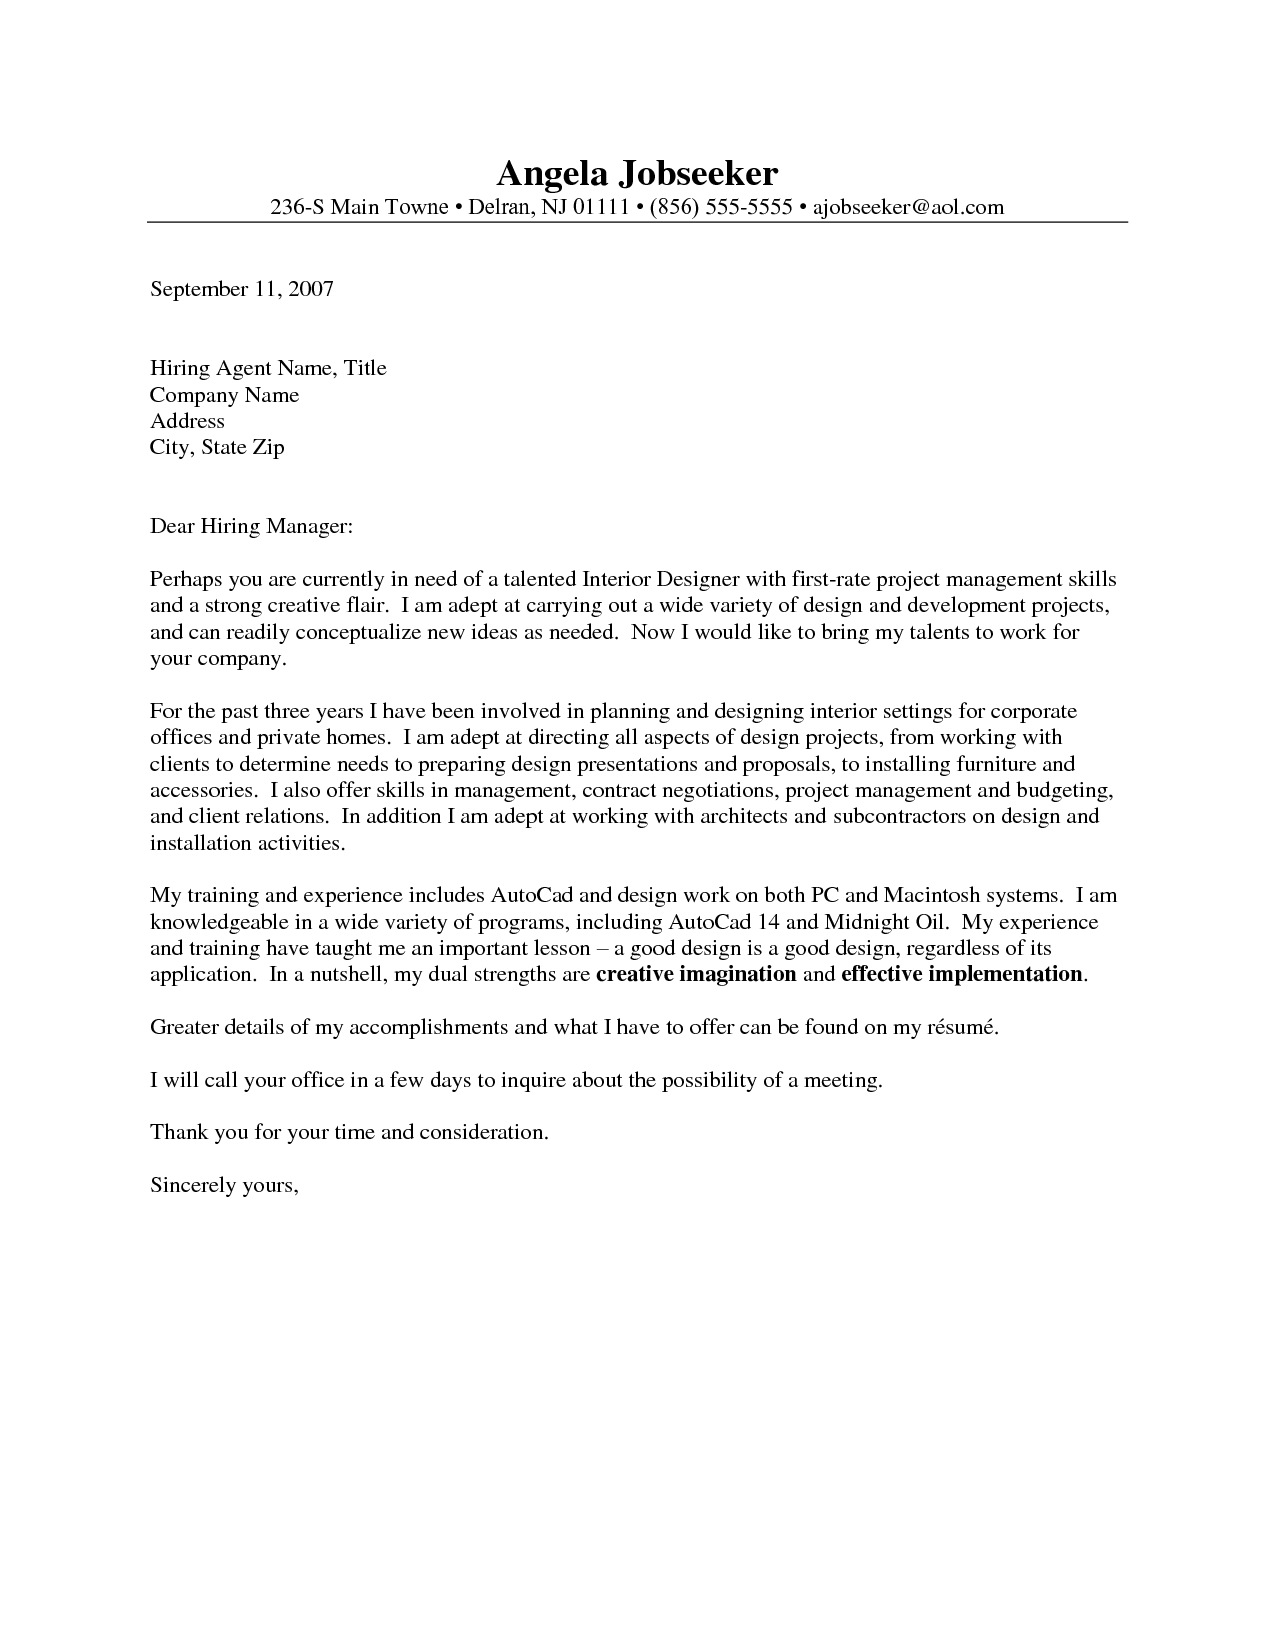 Theatre Cover Letter Template - Outstanding Cover Letter Examples